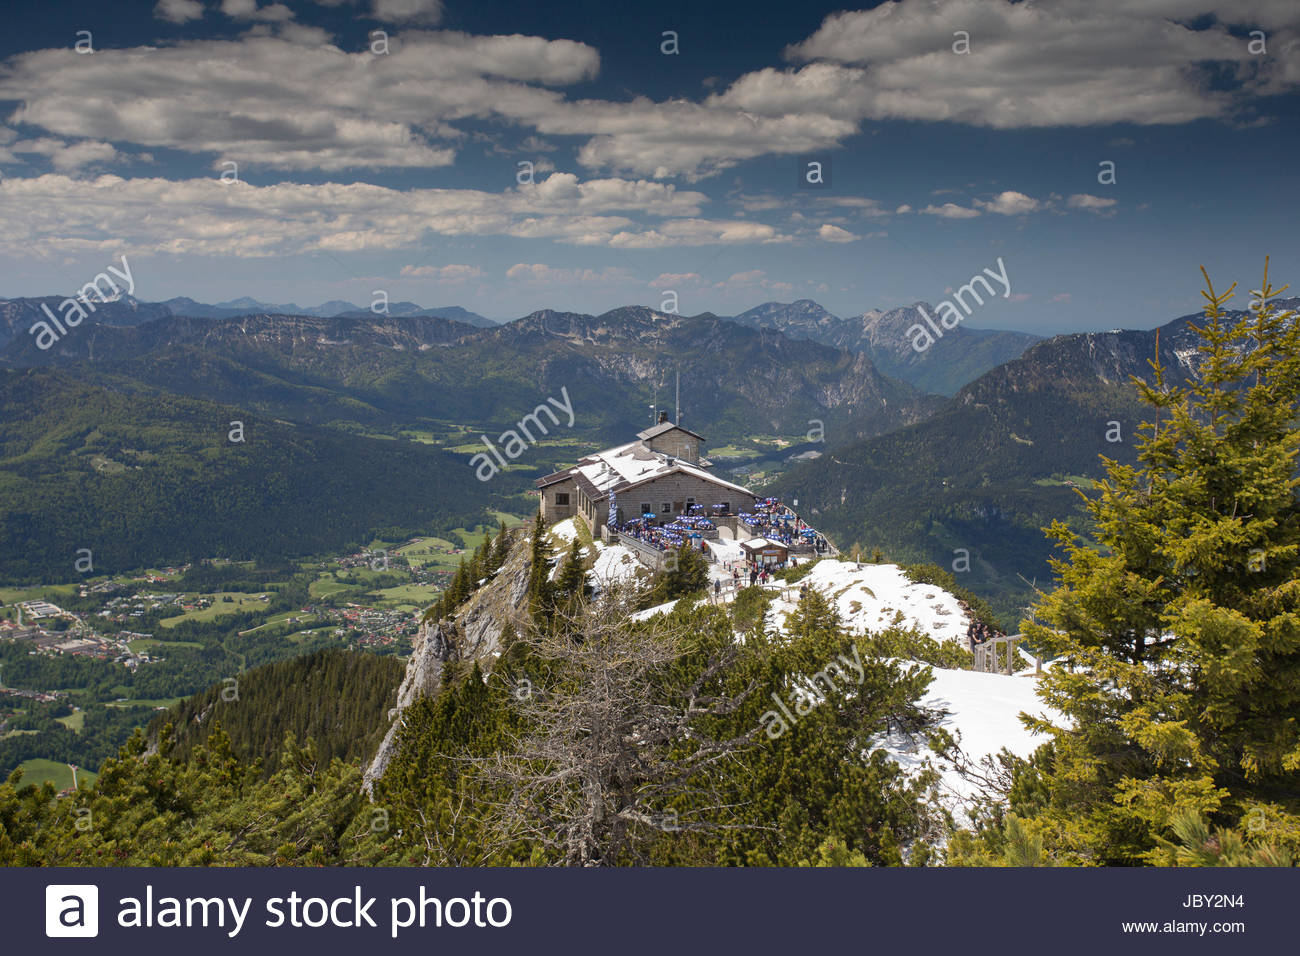 Dokumentation Obersalzberg The Bavarian Alps, Obersalzberg Stock Photos & Obersalzberg Stock Images - Page 2 - Alamy